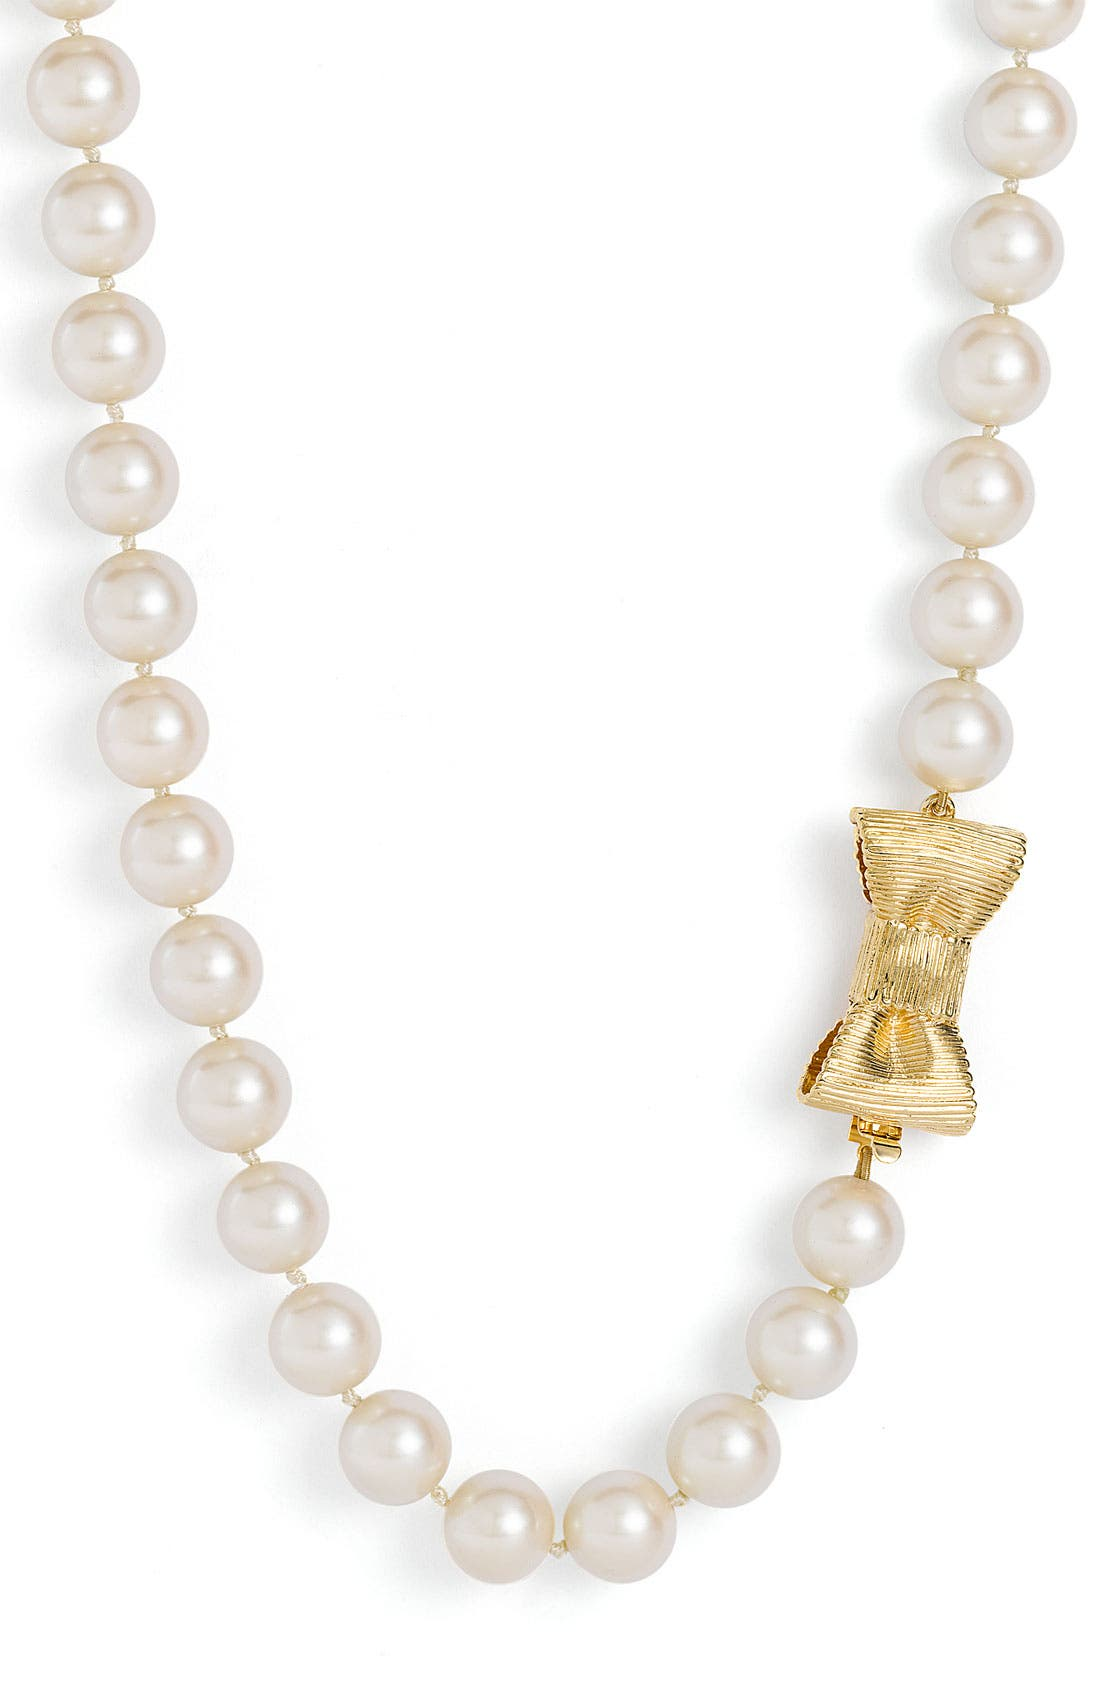 Alternate Image 1 Selected - kate spade new york 'all wrapped up' glass pearl long necklace